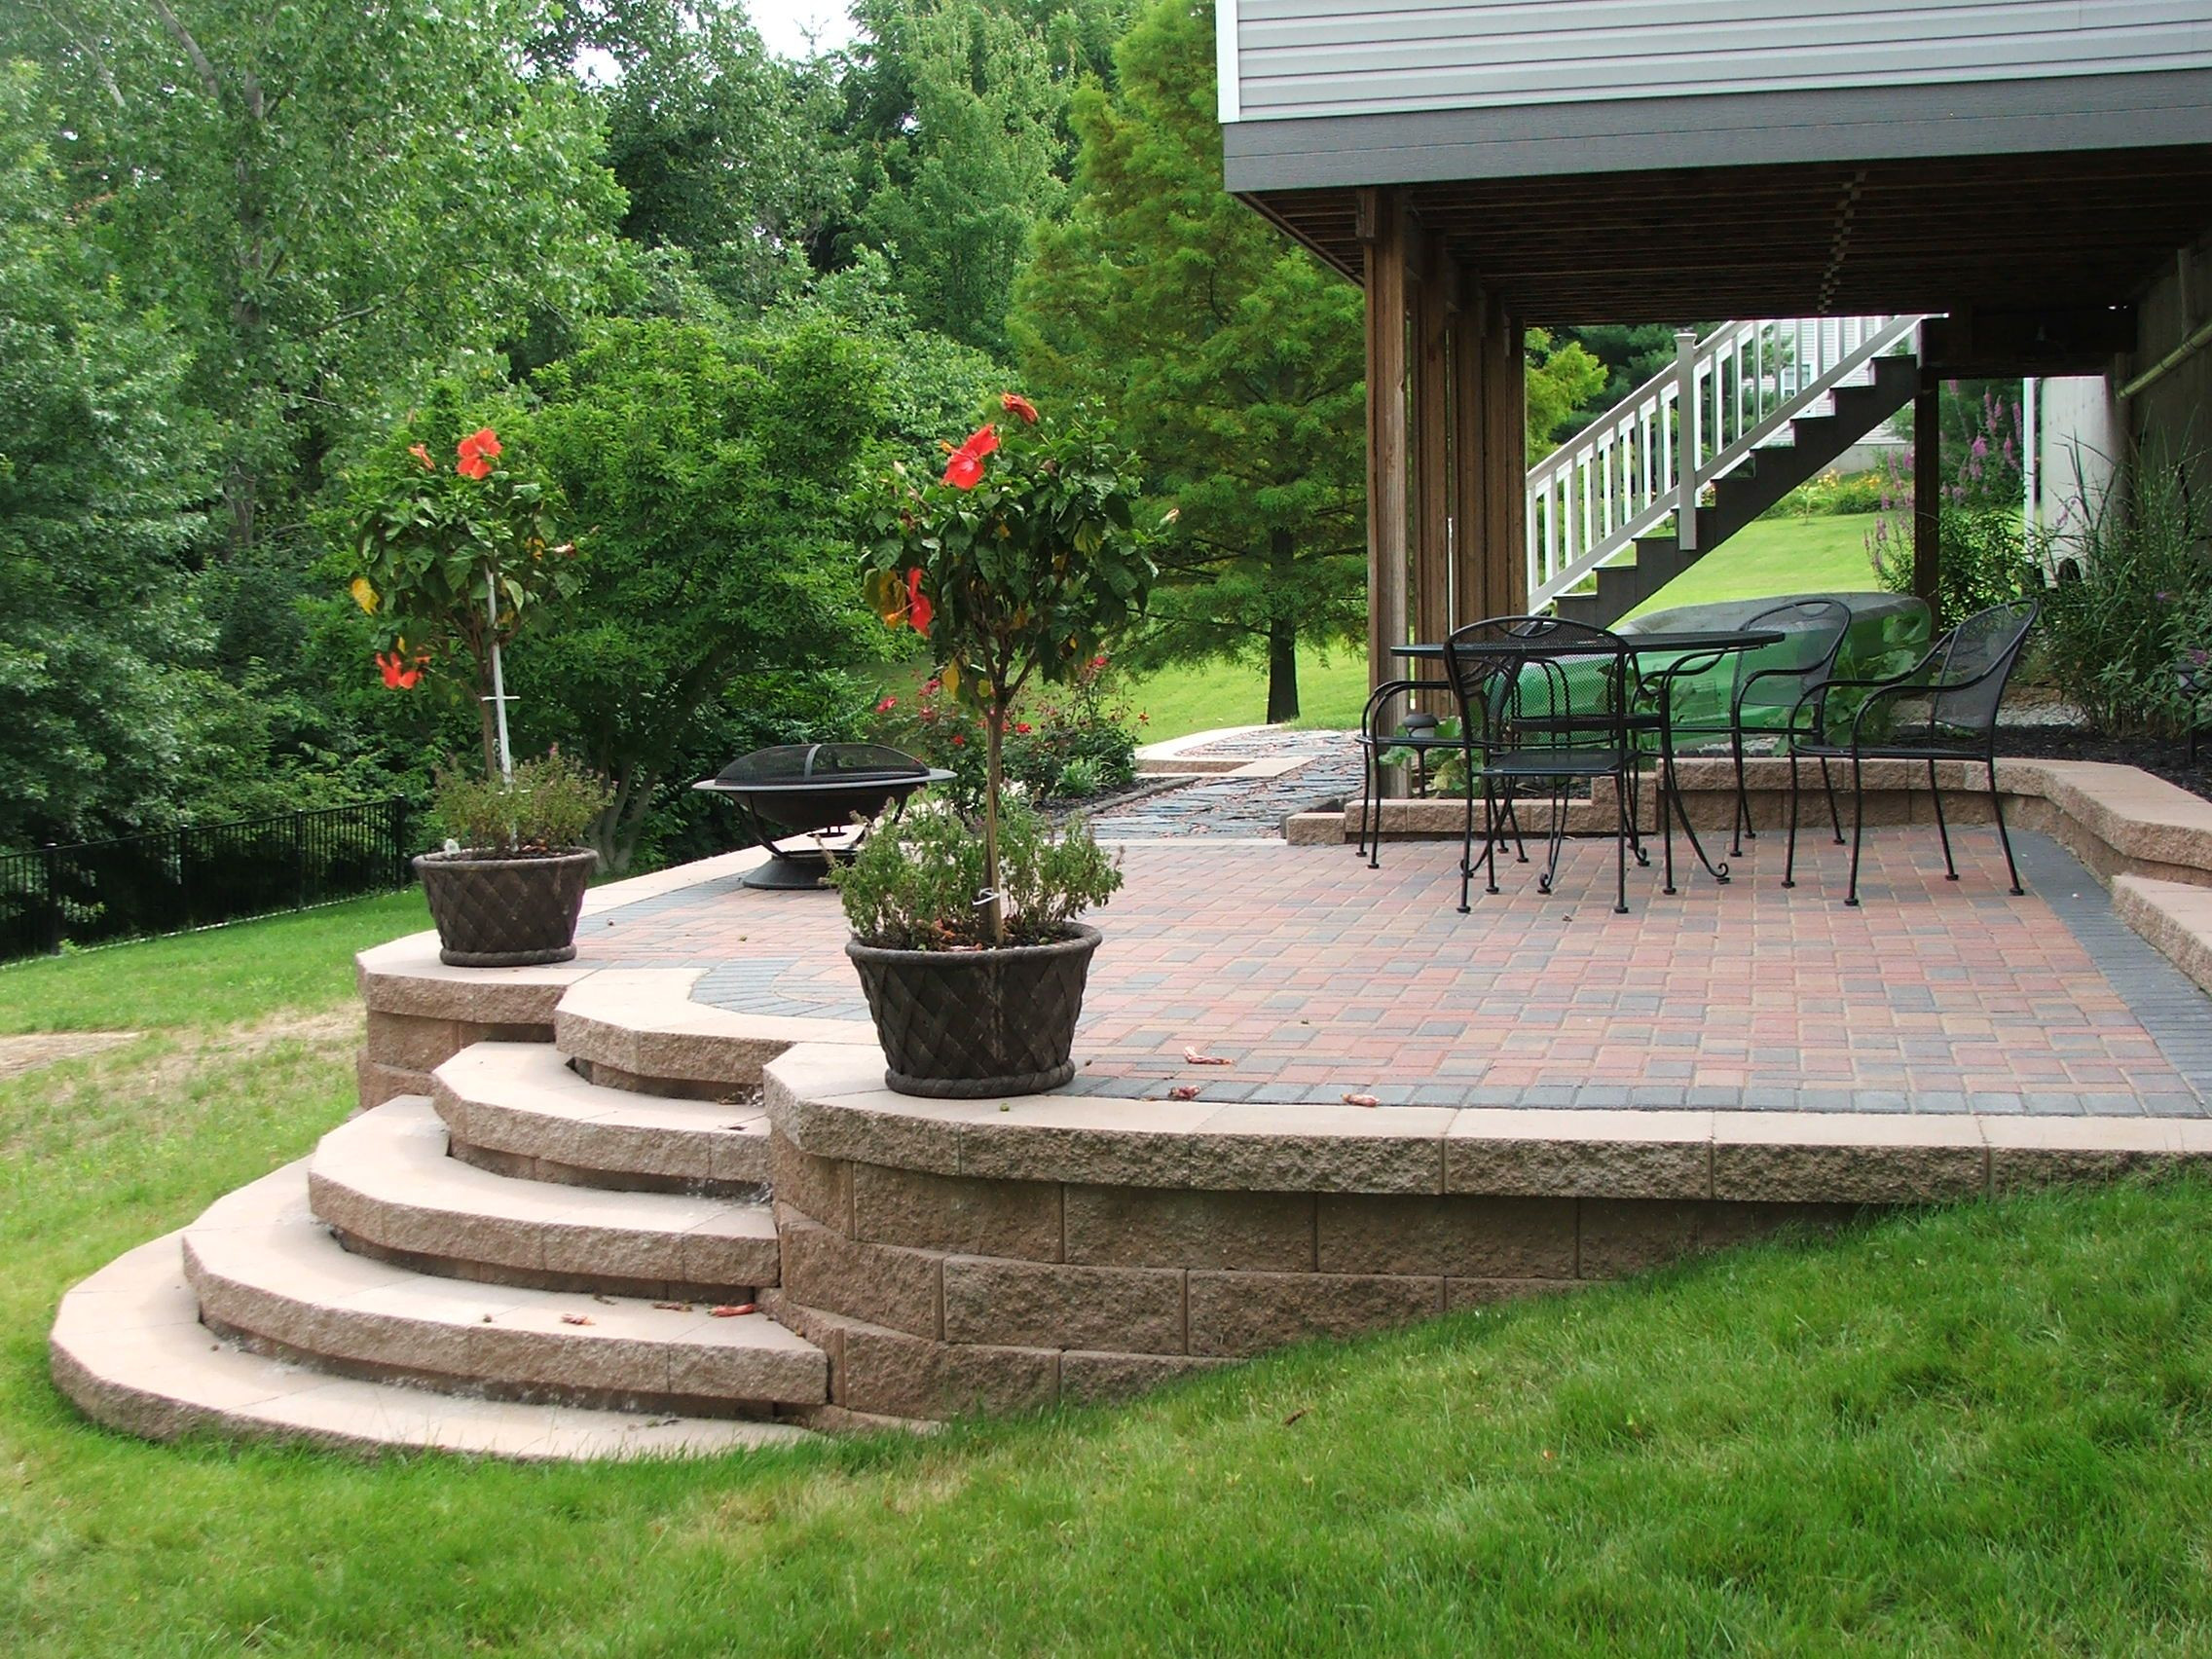 Best ideas about Patio Wall Ideas . Save or Pin concrete stairs yard Now.